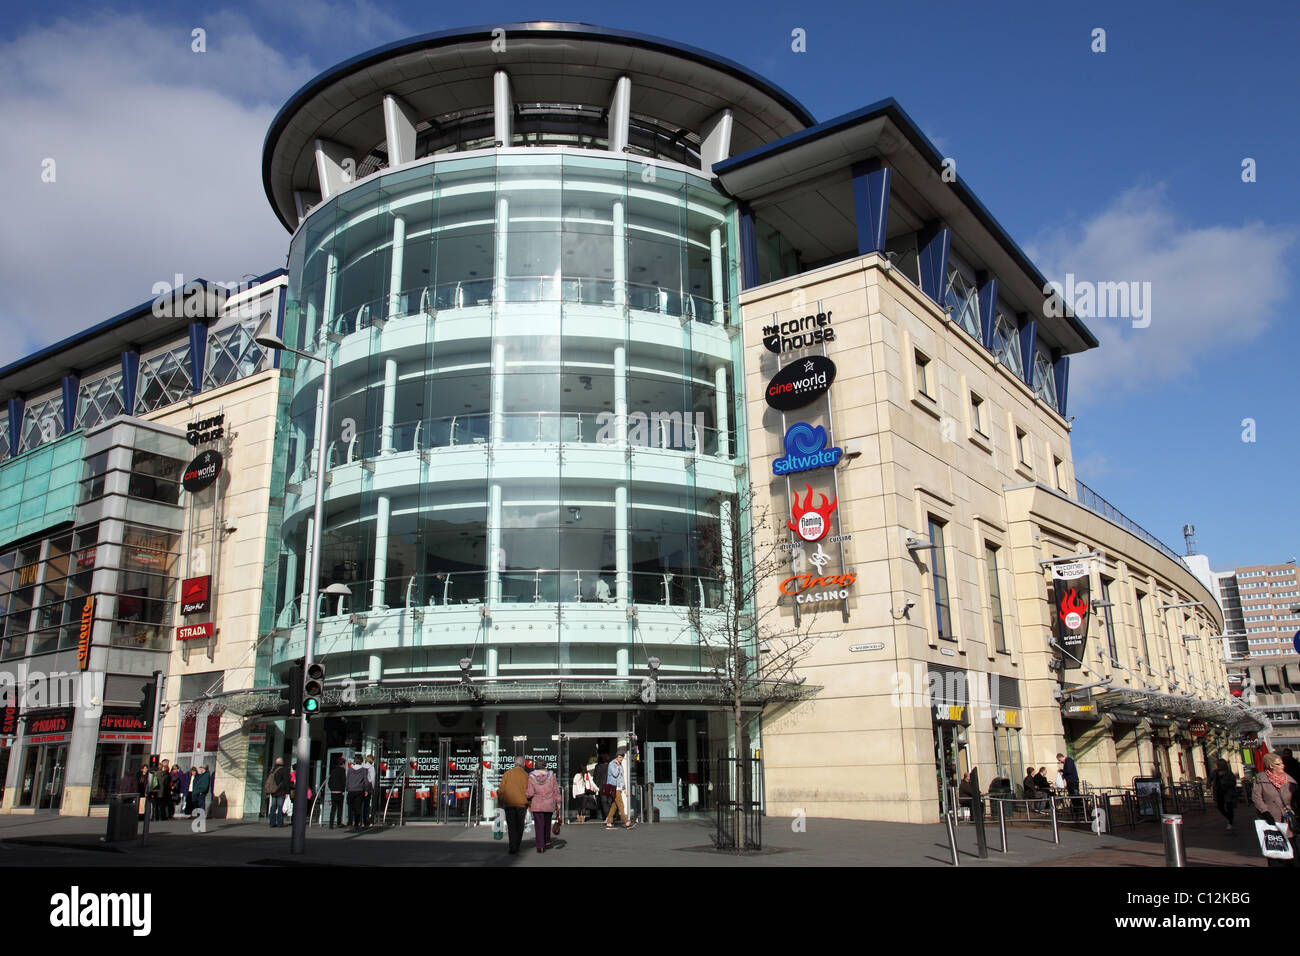 The Corner House, Nottingham, England, U.K. - Stock Image